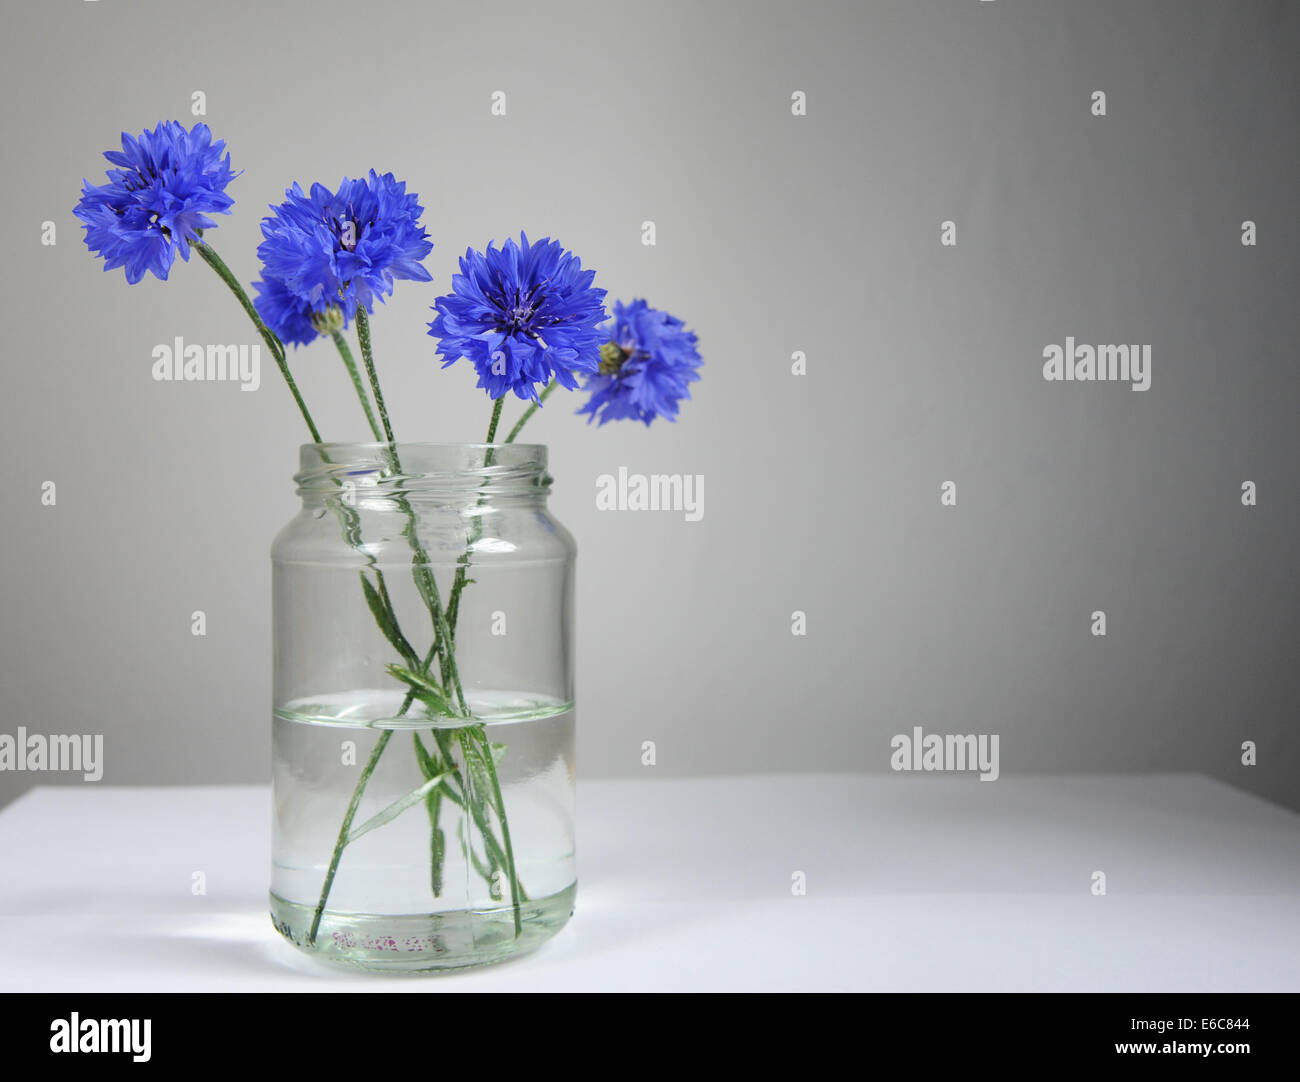 Blue cornflowers in a jar against a grey background. - Stock Image